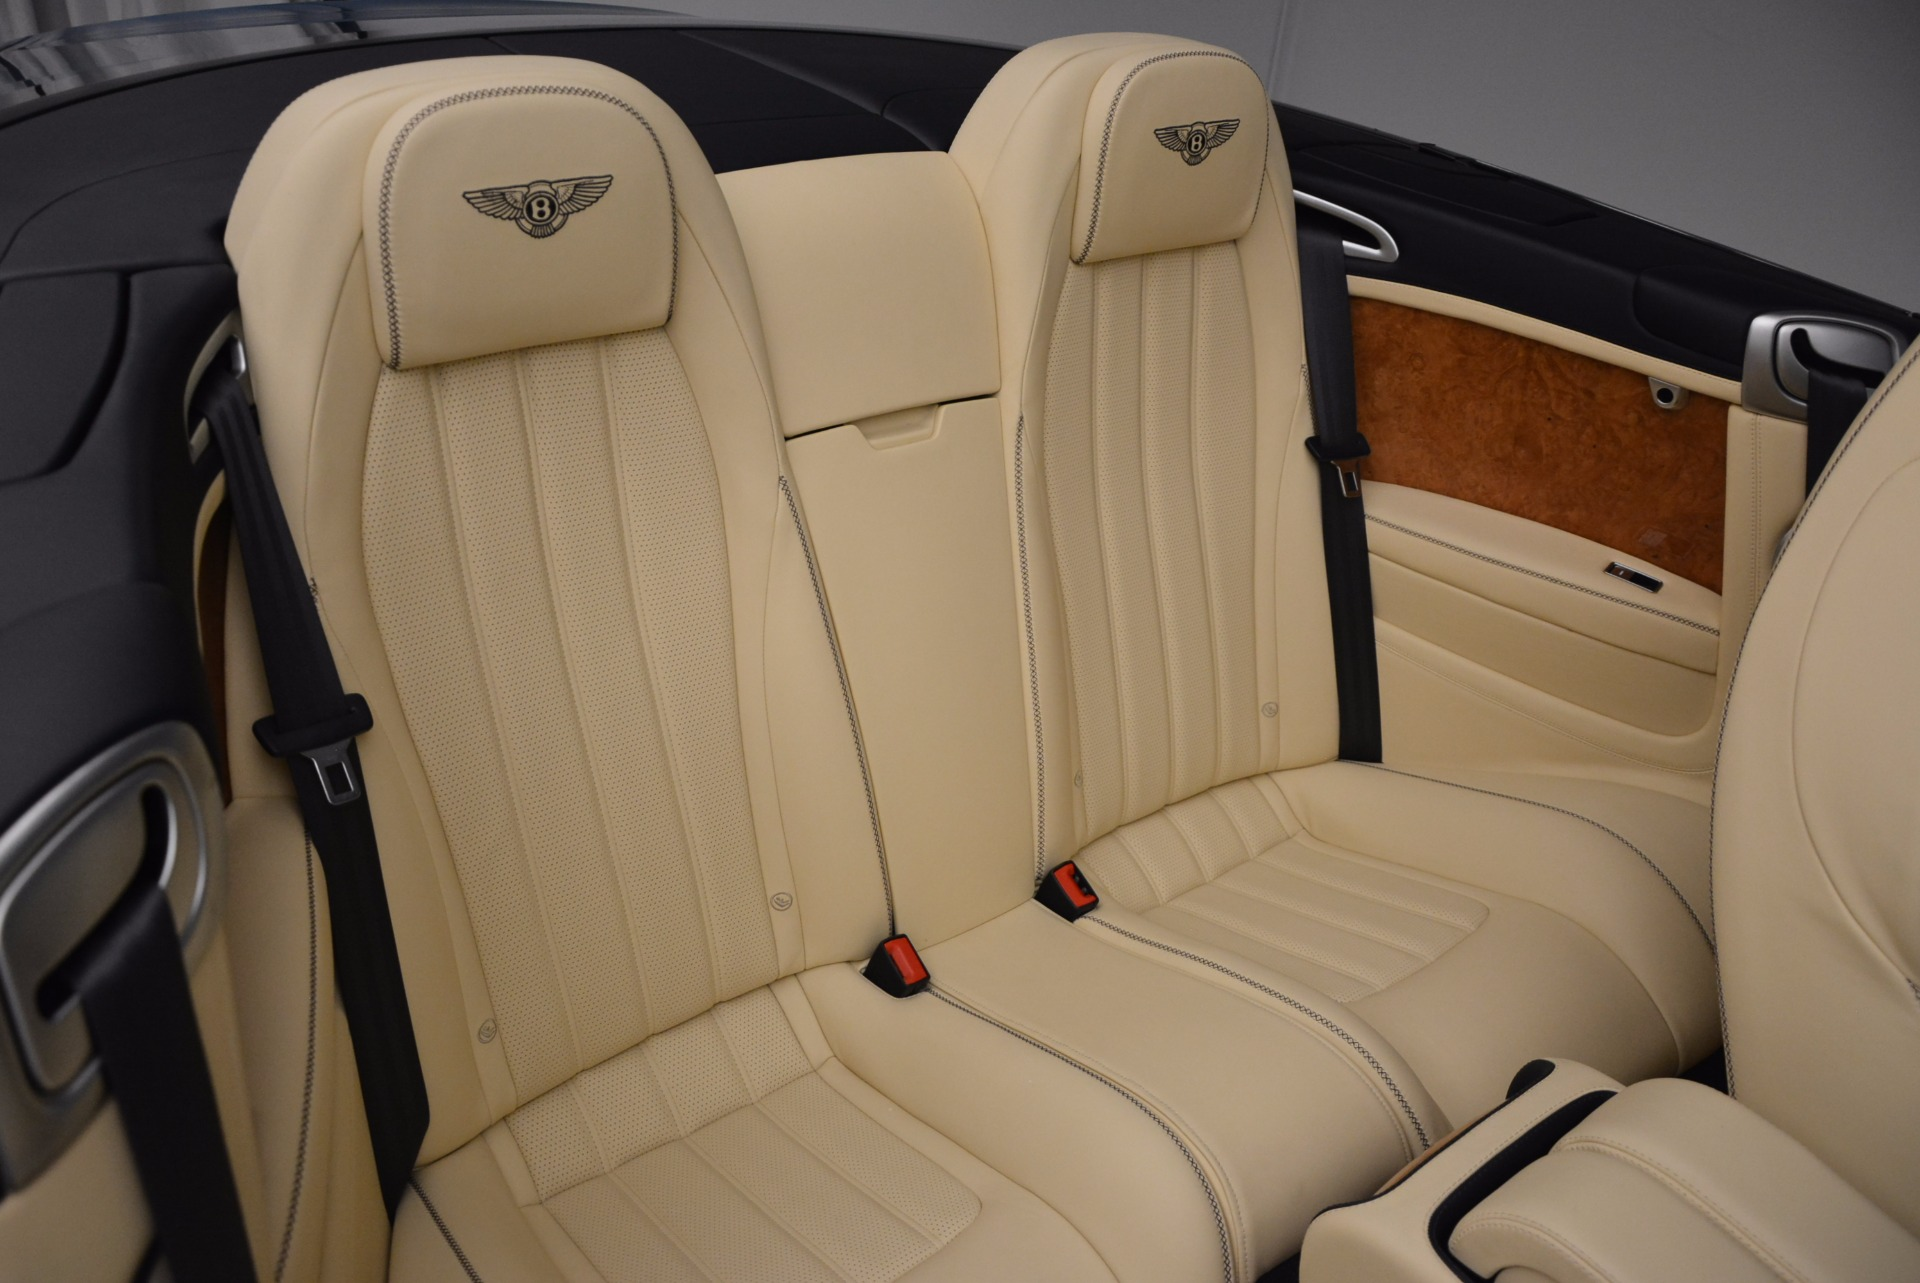 Used 2012 Bentley Continental GTC W12 For Sale In Westport, CT 1475_p47